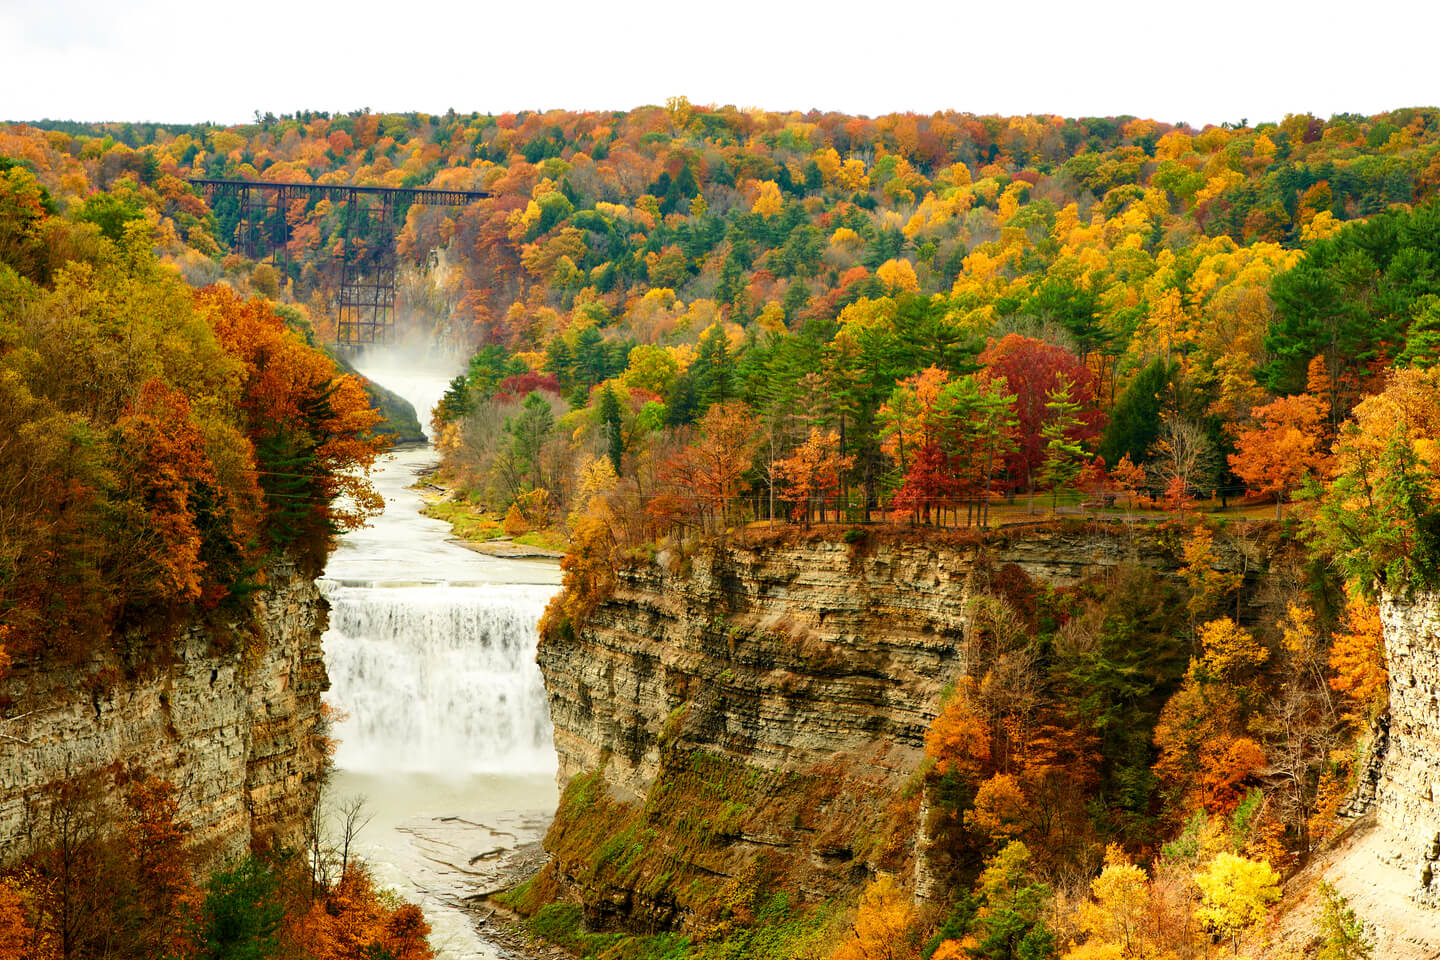 Camping Destinations Near New York to Explore this Fall